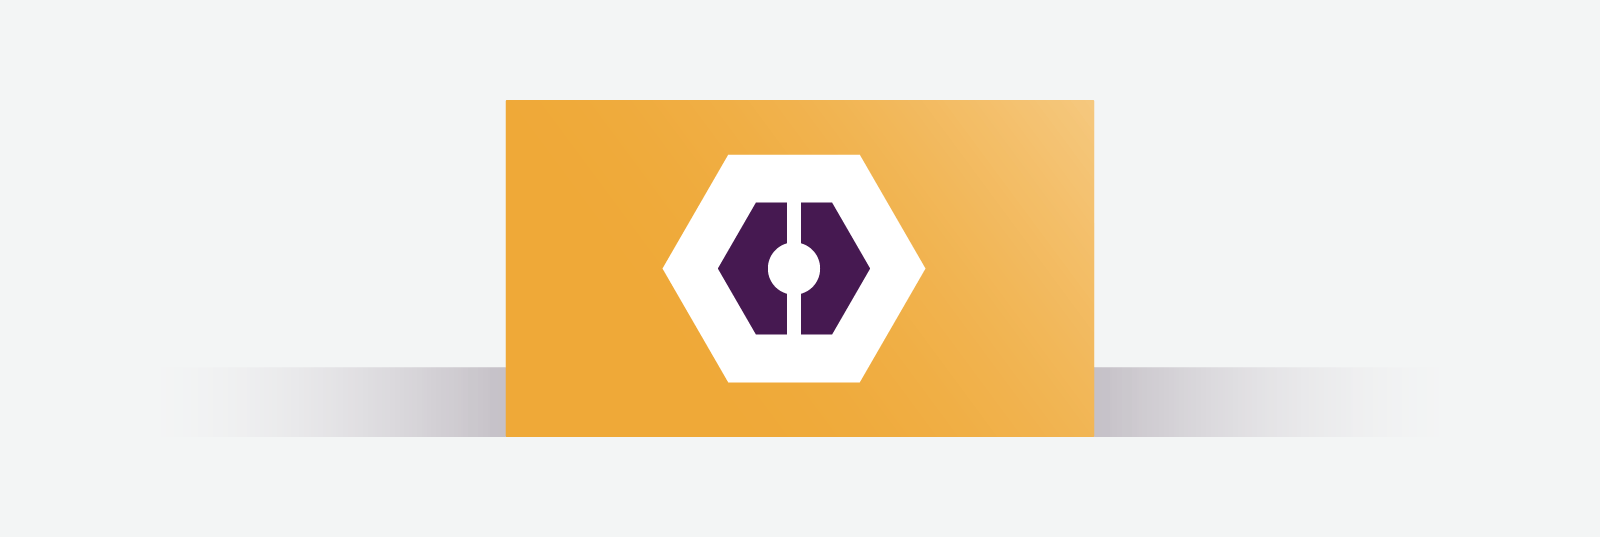 Orange business card with white and purple hexagon in the middle